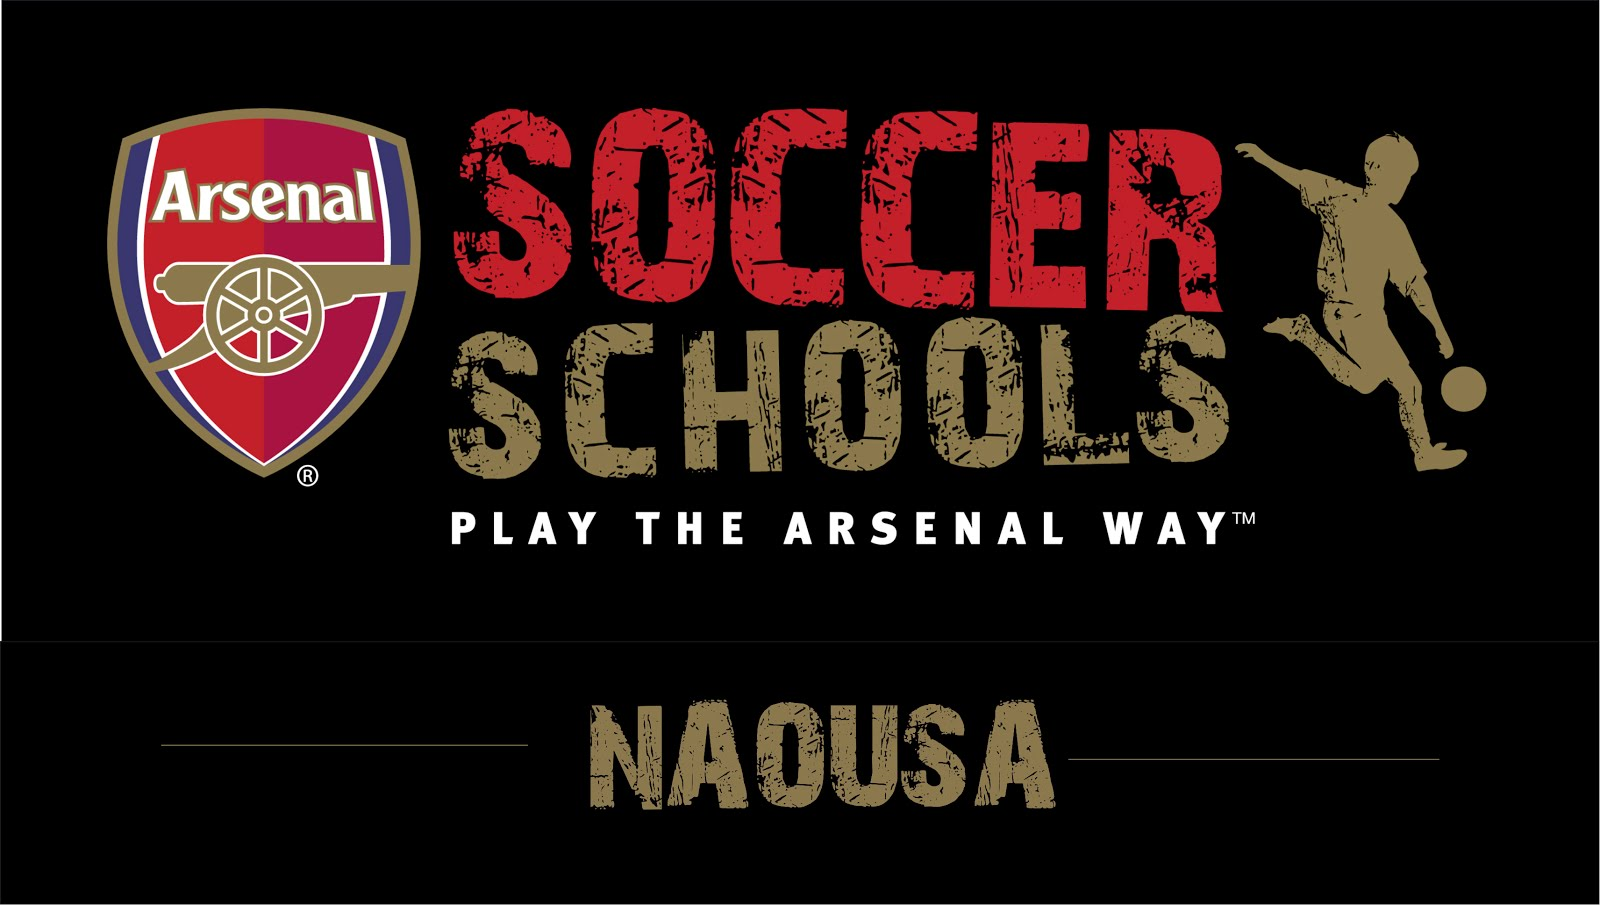 ARSENAL SOCCER SCHOOL ΝΑΟΥΣΑΣ